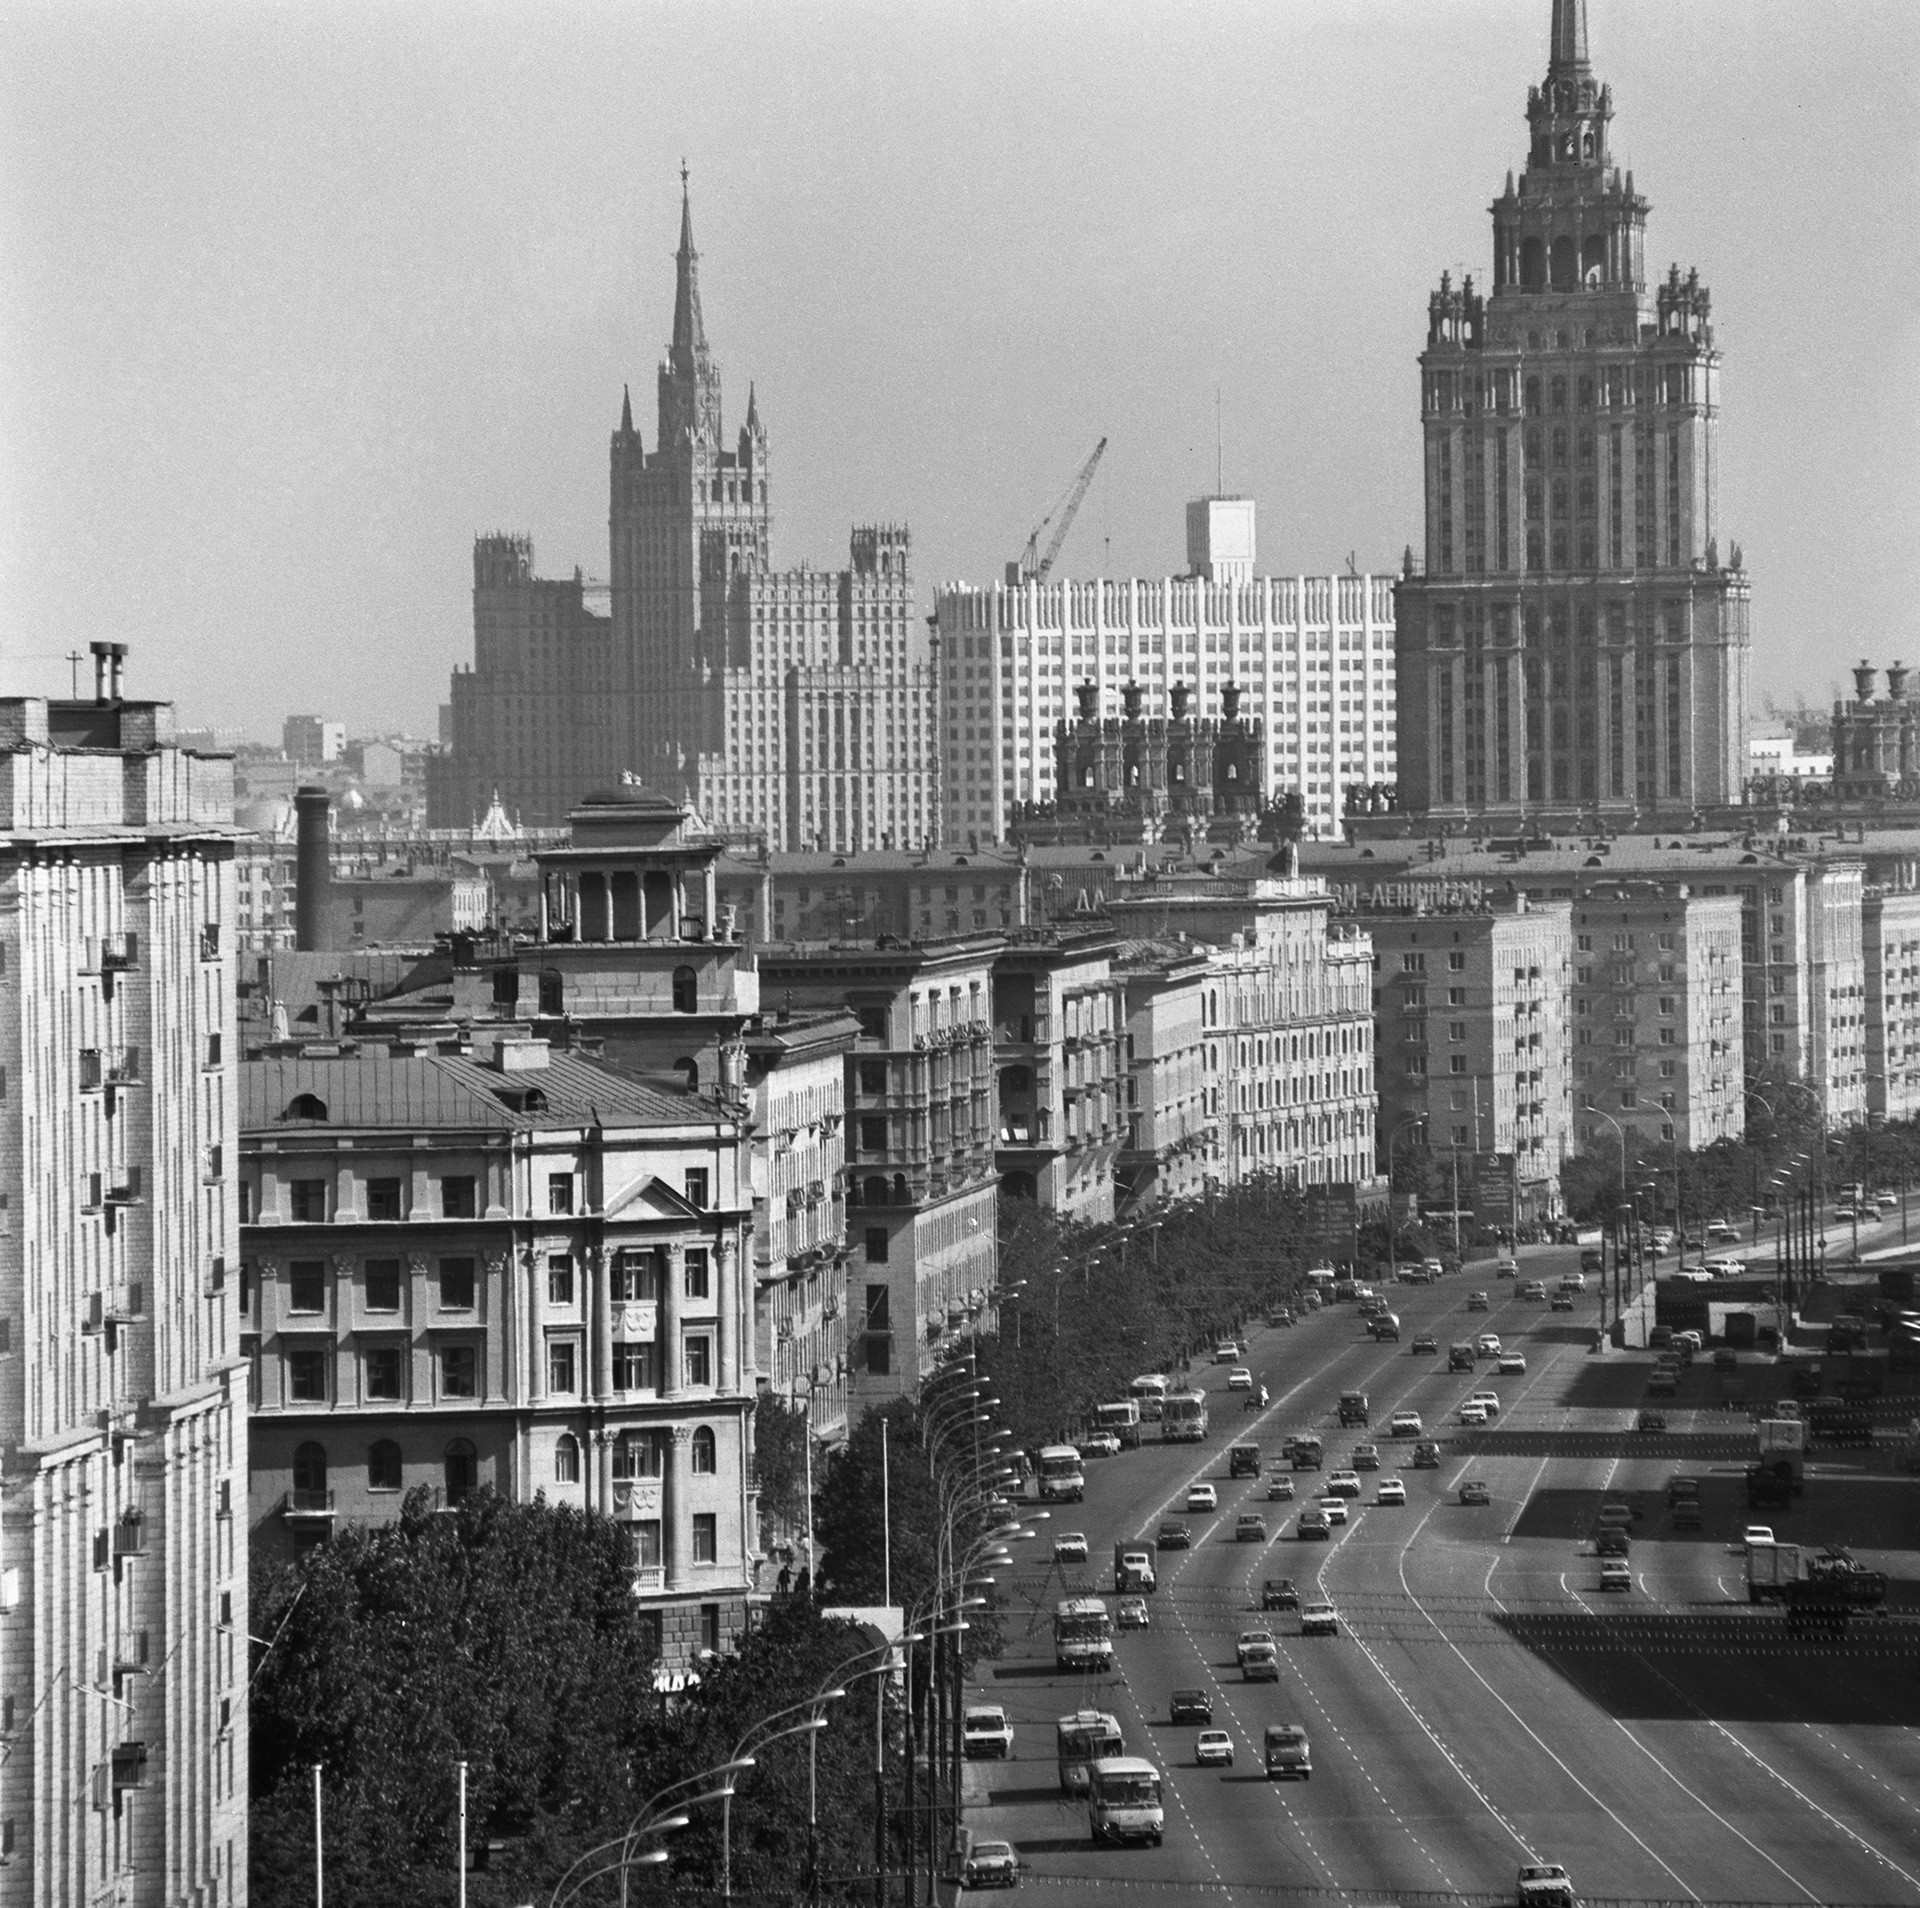 Moscow's Kutuzovsky Prospekt, home to top Soviet officials such as Leonid Brezhnev and Yuri Andropov.